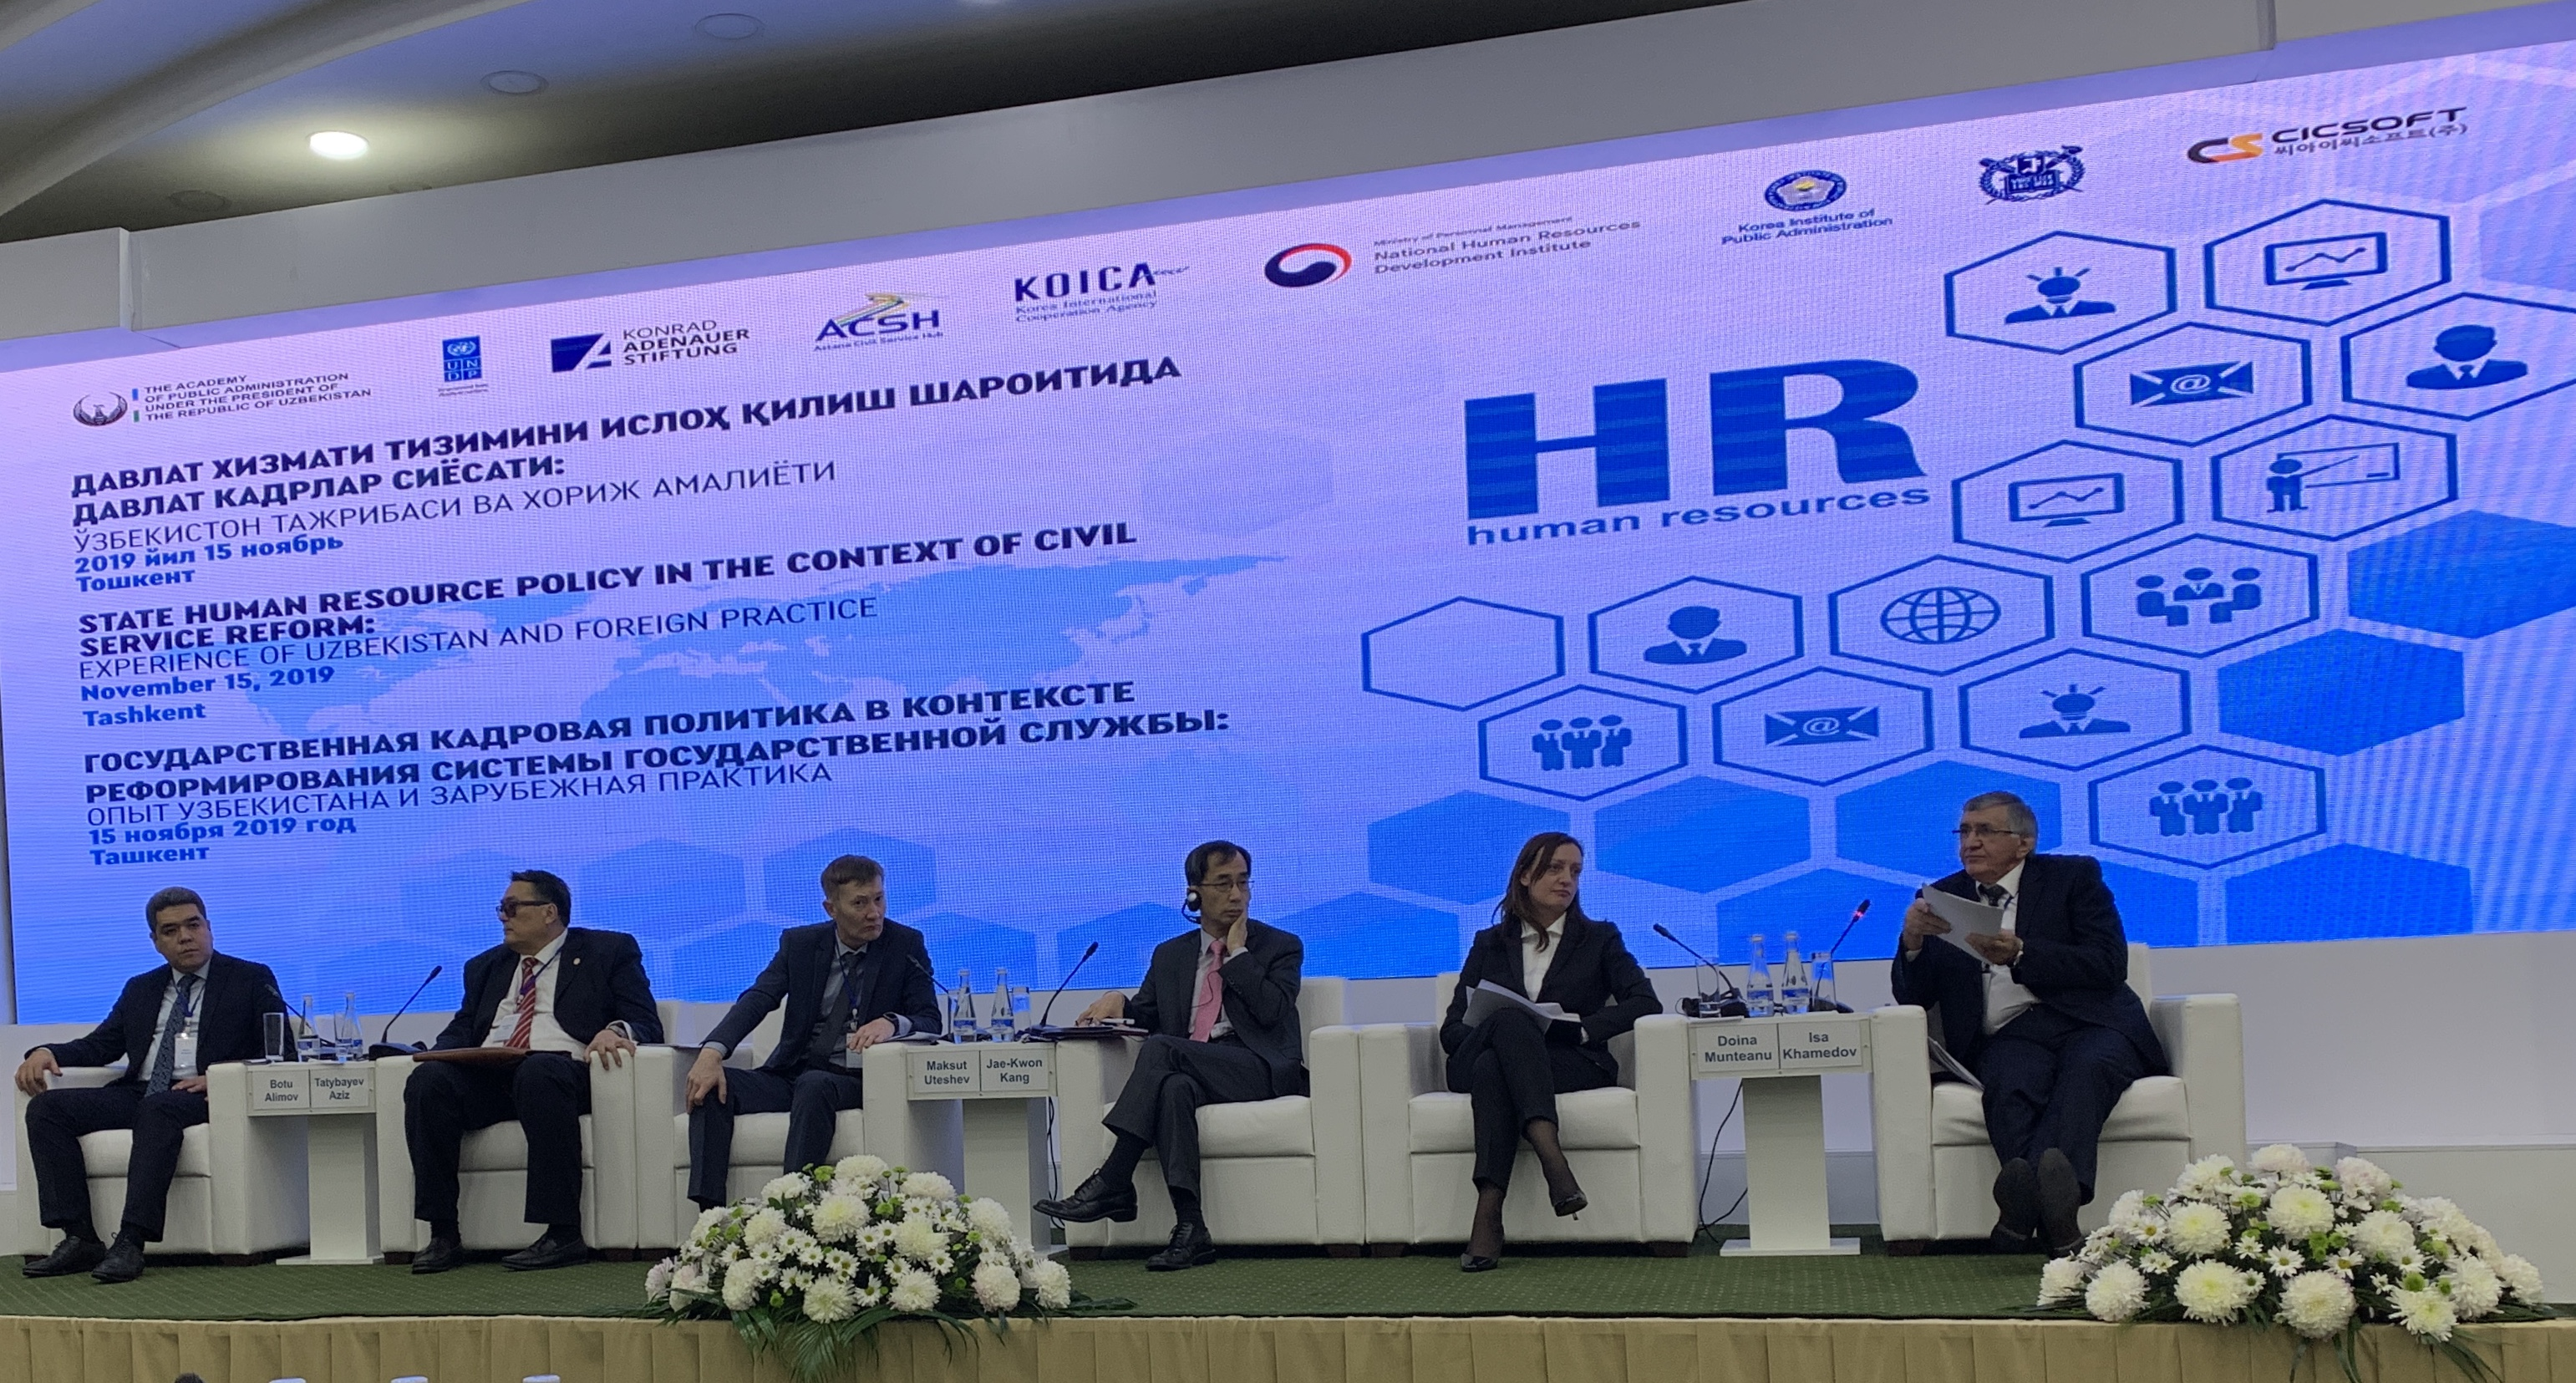 Astana civil service hub co-hosted International Scientific and Practical Conference in Tashkent